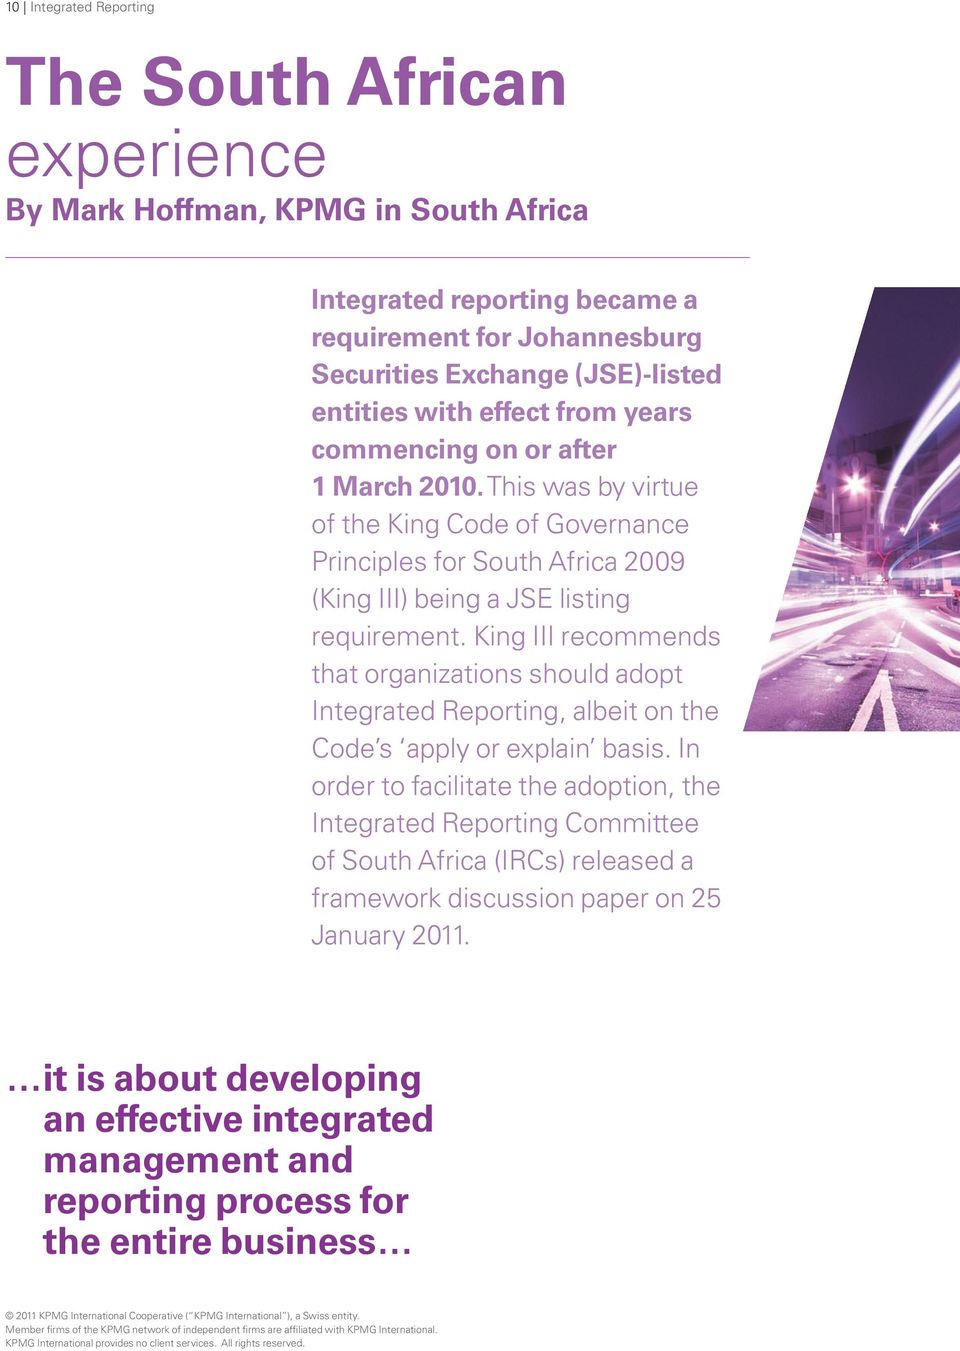 This was by virtue of the King Code of Governance Principles for South Africa 2009 (King III) being a JSE listing requirement.